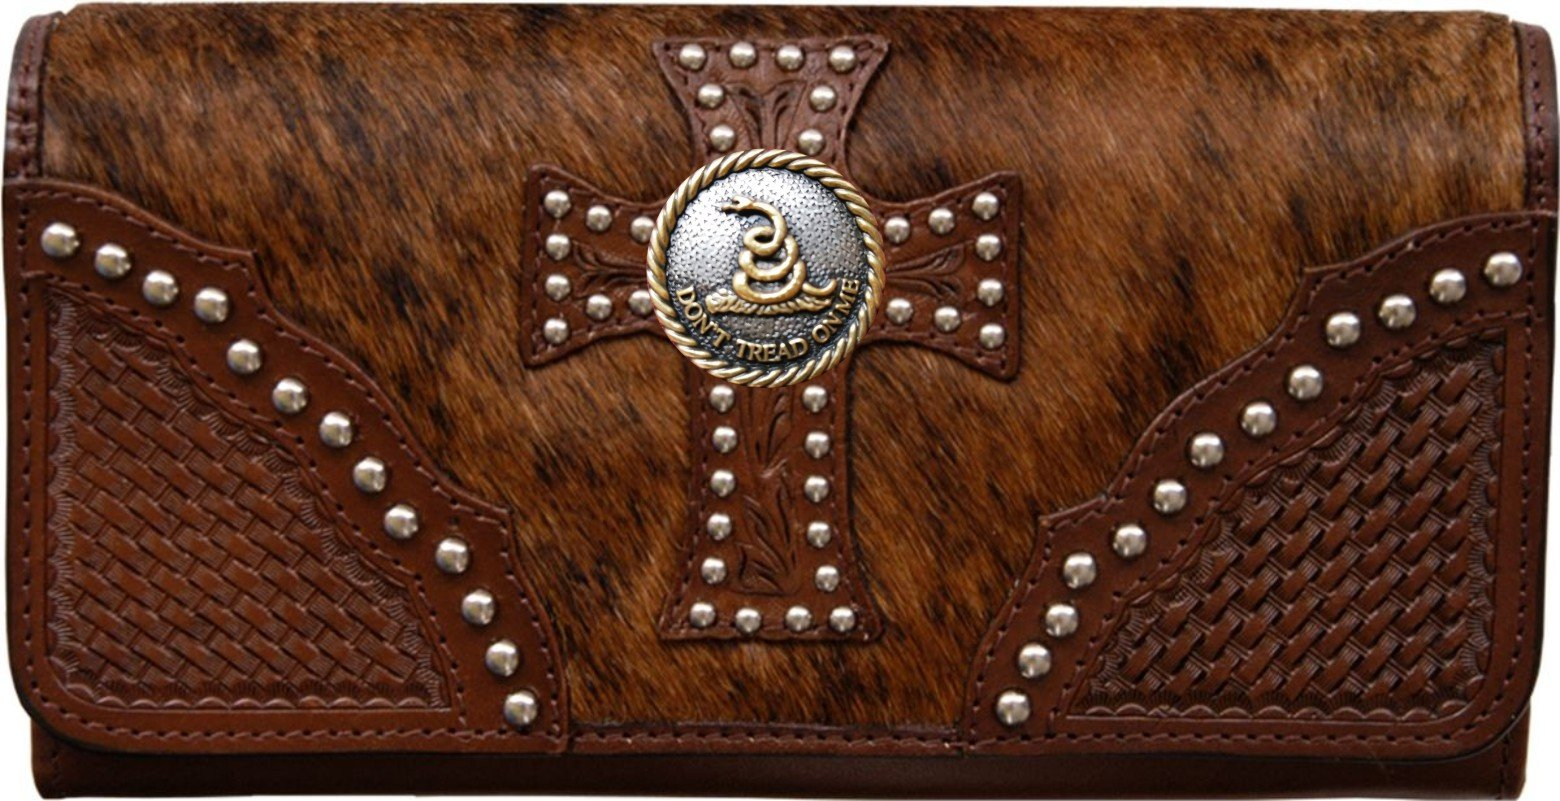 Custom Don't Tread On Me Natural Hair Christian Clutch Wallet with removable checkbook